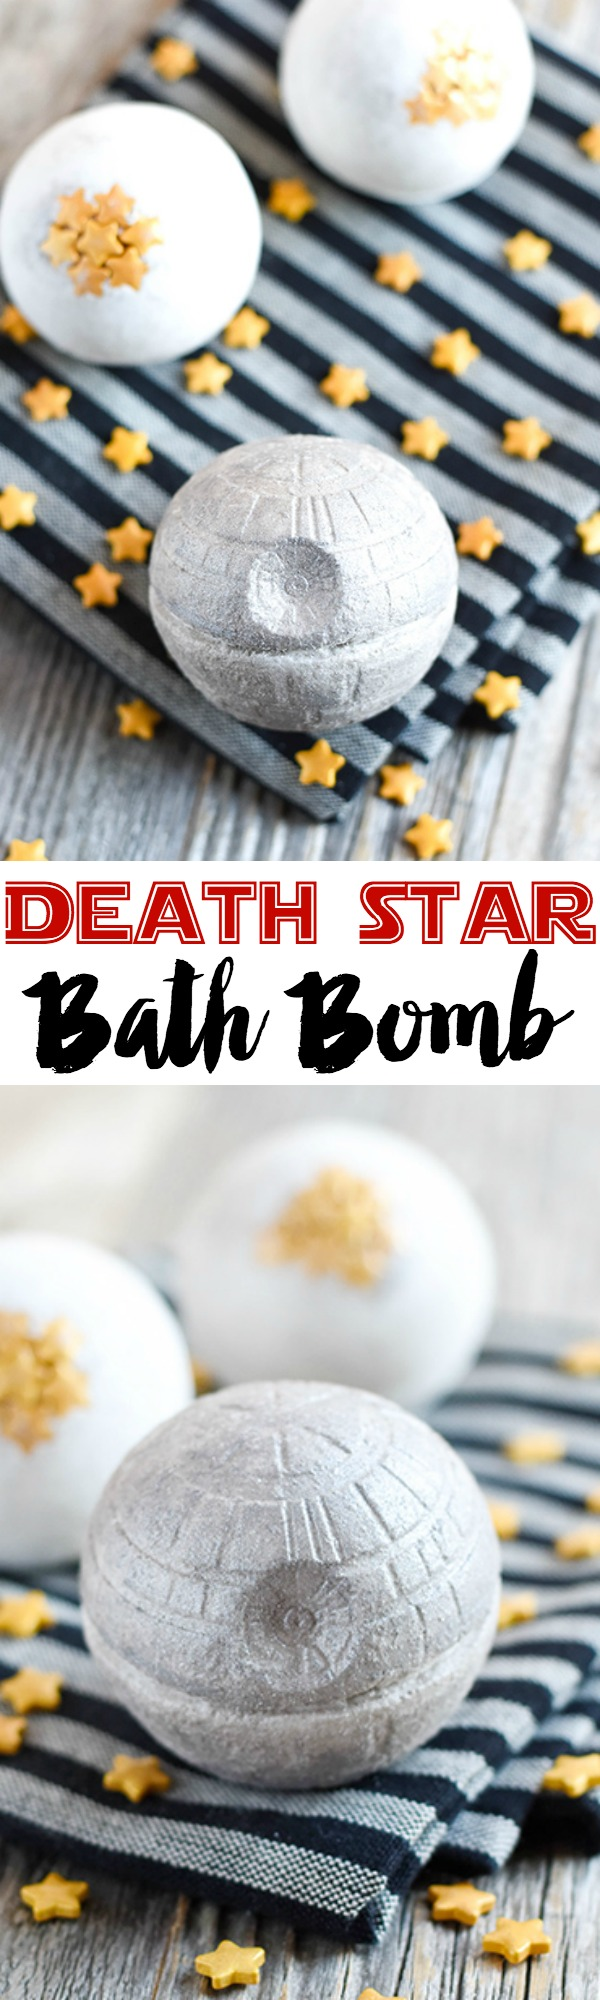 DIY projects, DIY bath bombs, DIY projects, natural beauty, homemade beauty products, bath products, health and beauty, popular pin..